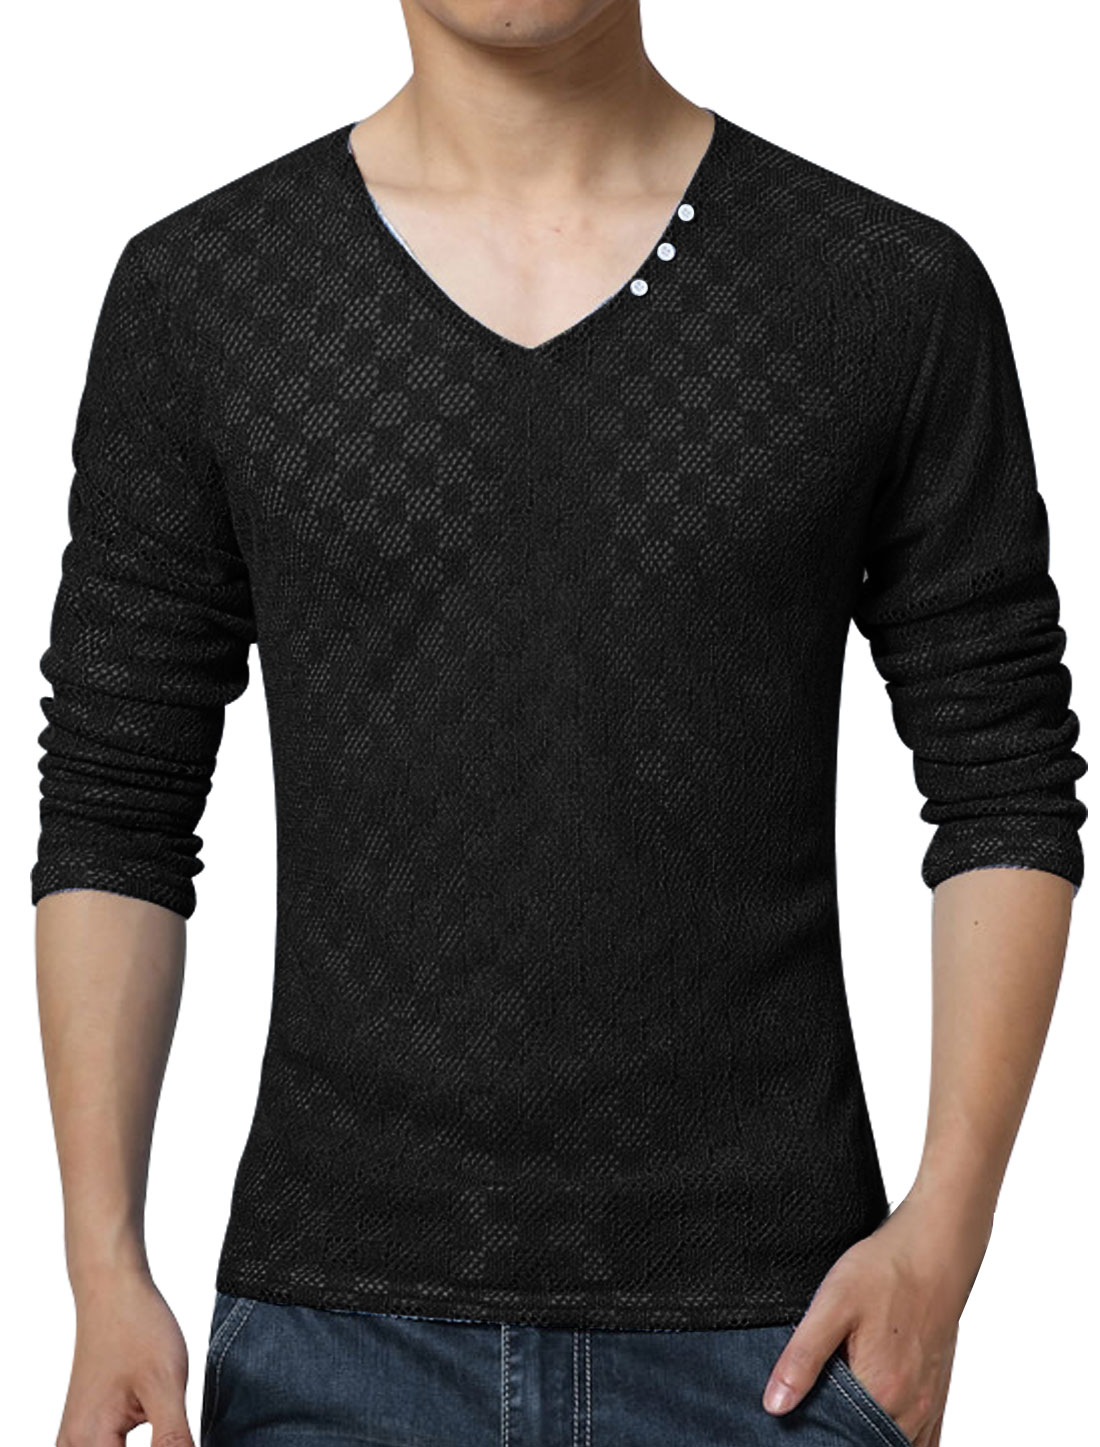 Men V Neck Long Sleeves Slim Fit Plaids Mesh Top Black S